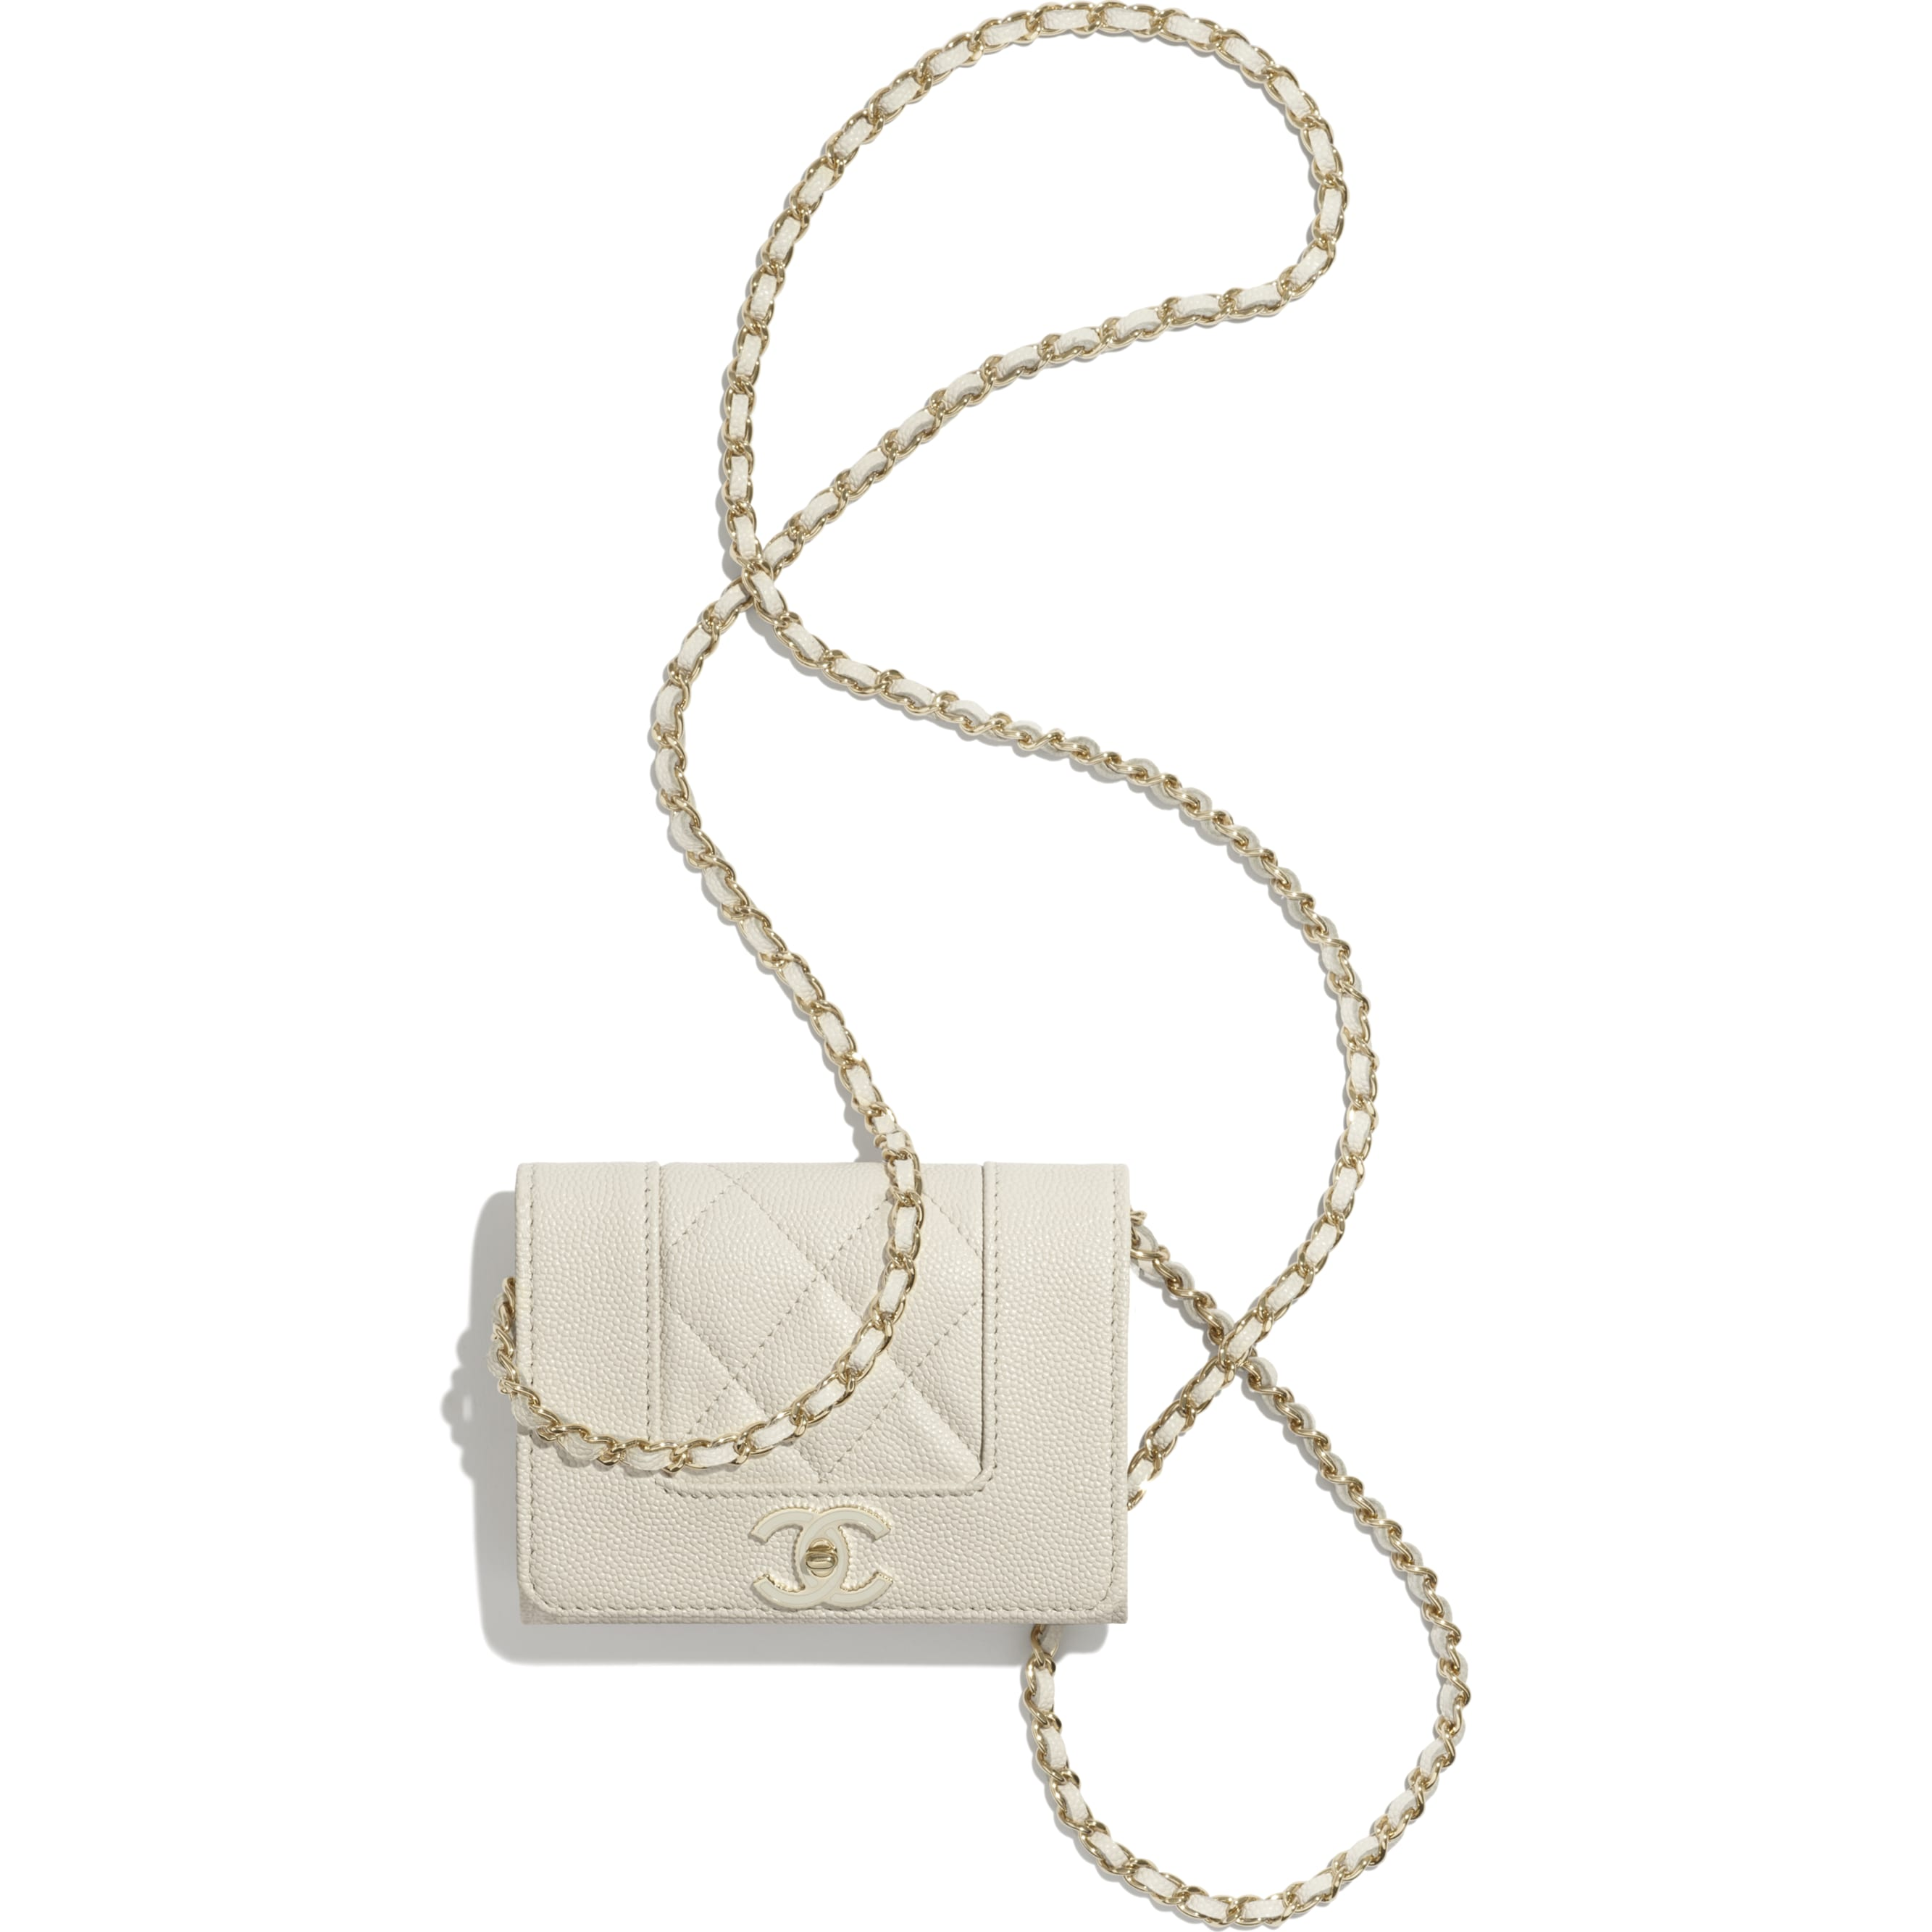 Flap Coin Purse with Chain - Ecru - Grained Lambskin, Lacquered & Gold-Tone Metal - CHANEL - Other view - see standard sized version